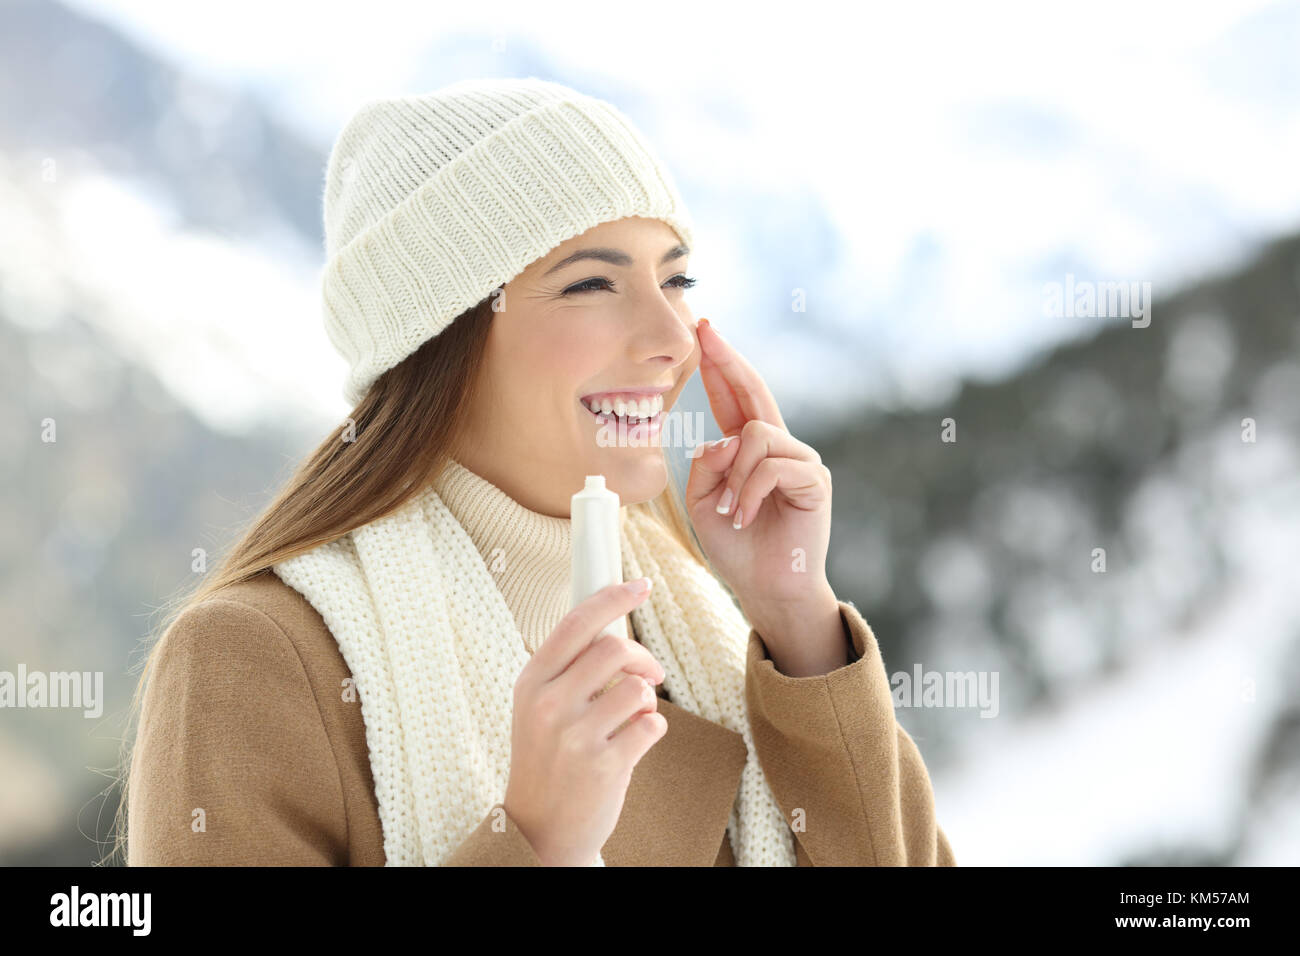 Lady hydrating her face skin with moisturizer cream in a snowy mountain in winter - Stock Image